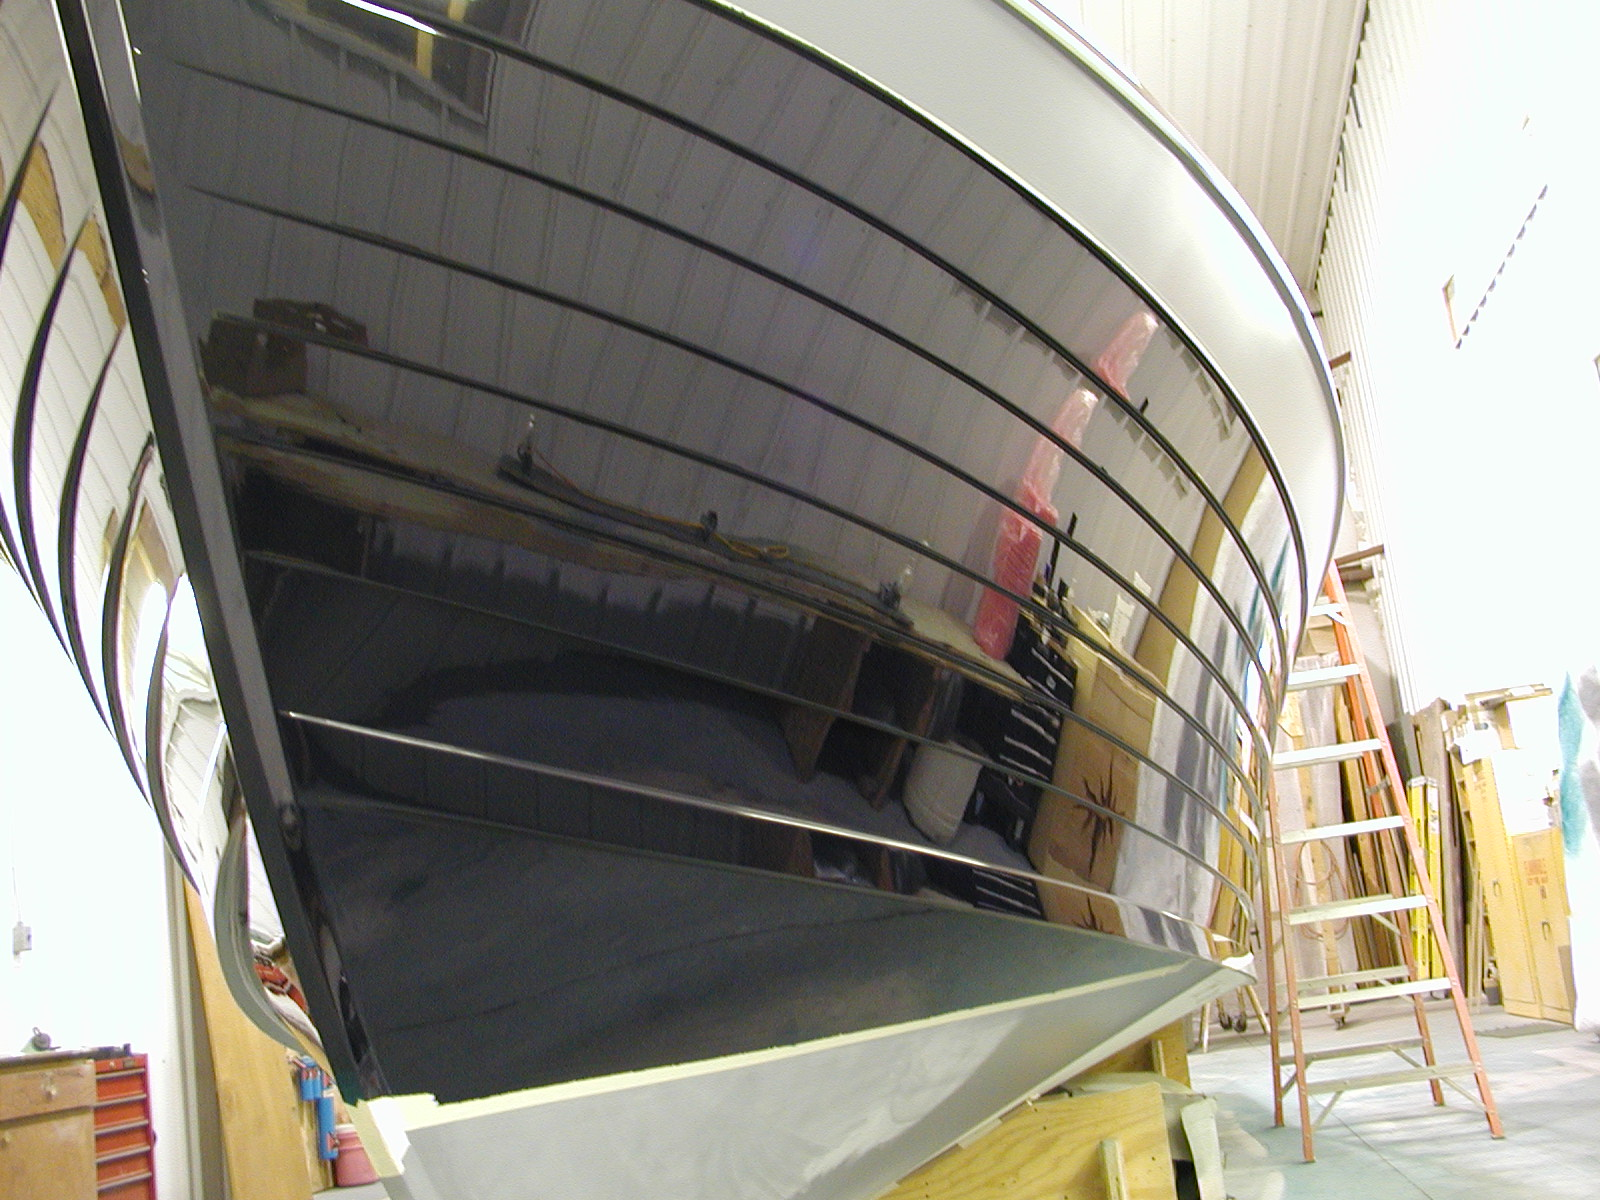 Hull being painted in paint bay on Chocolate Chip 3